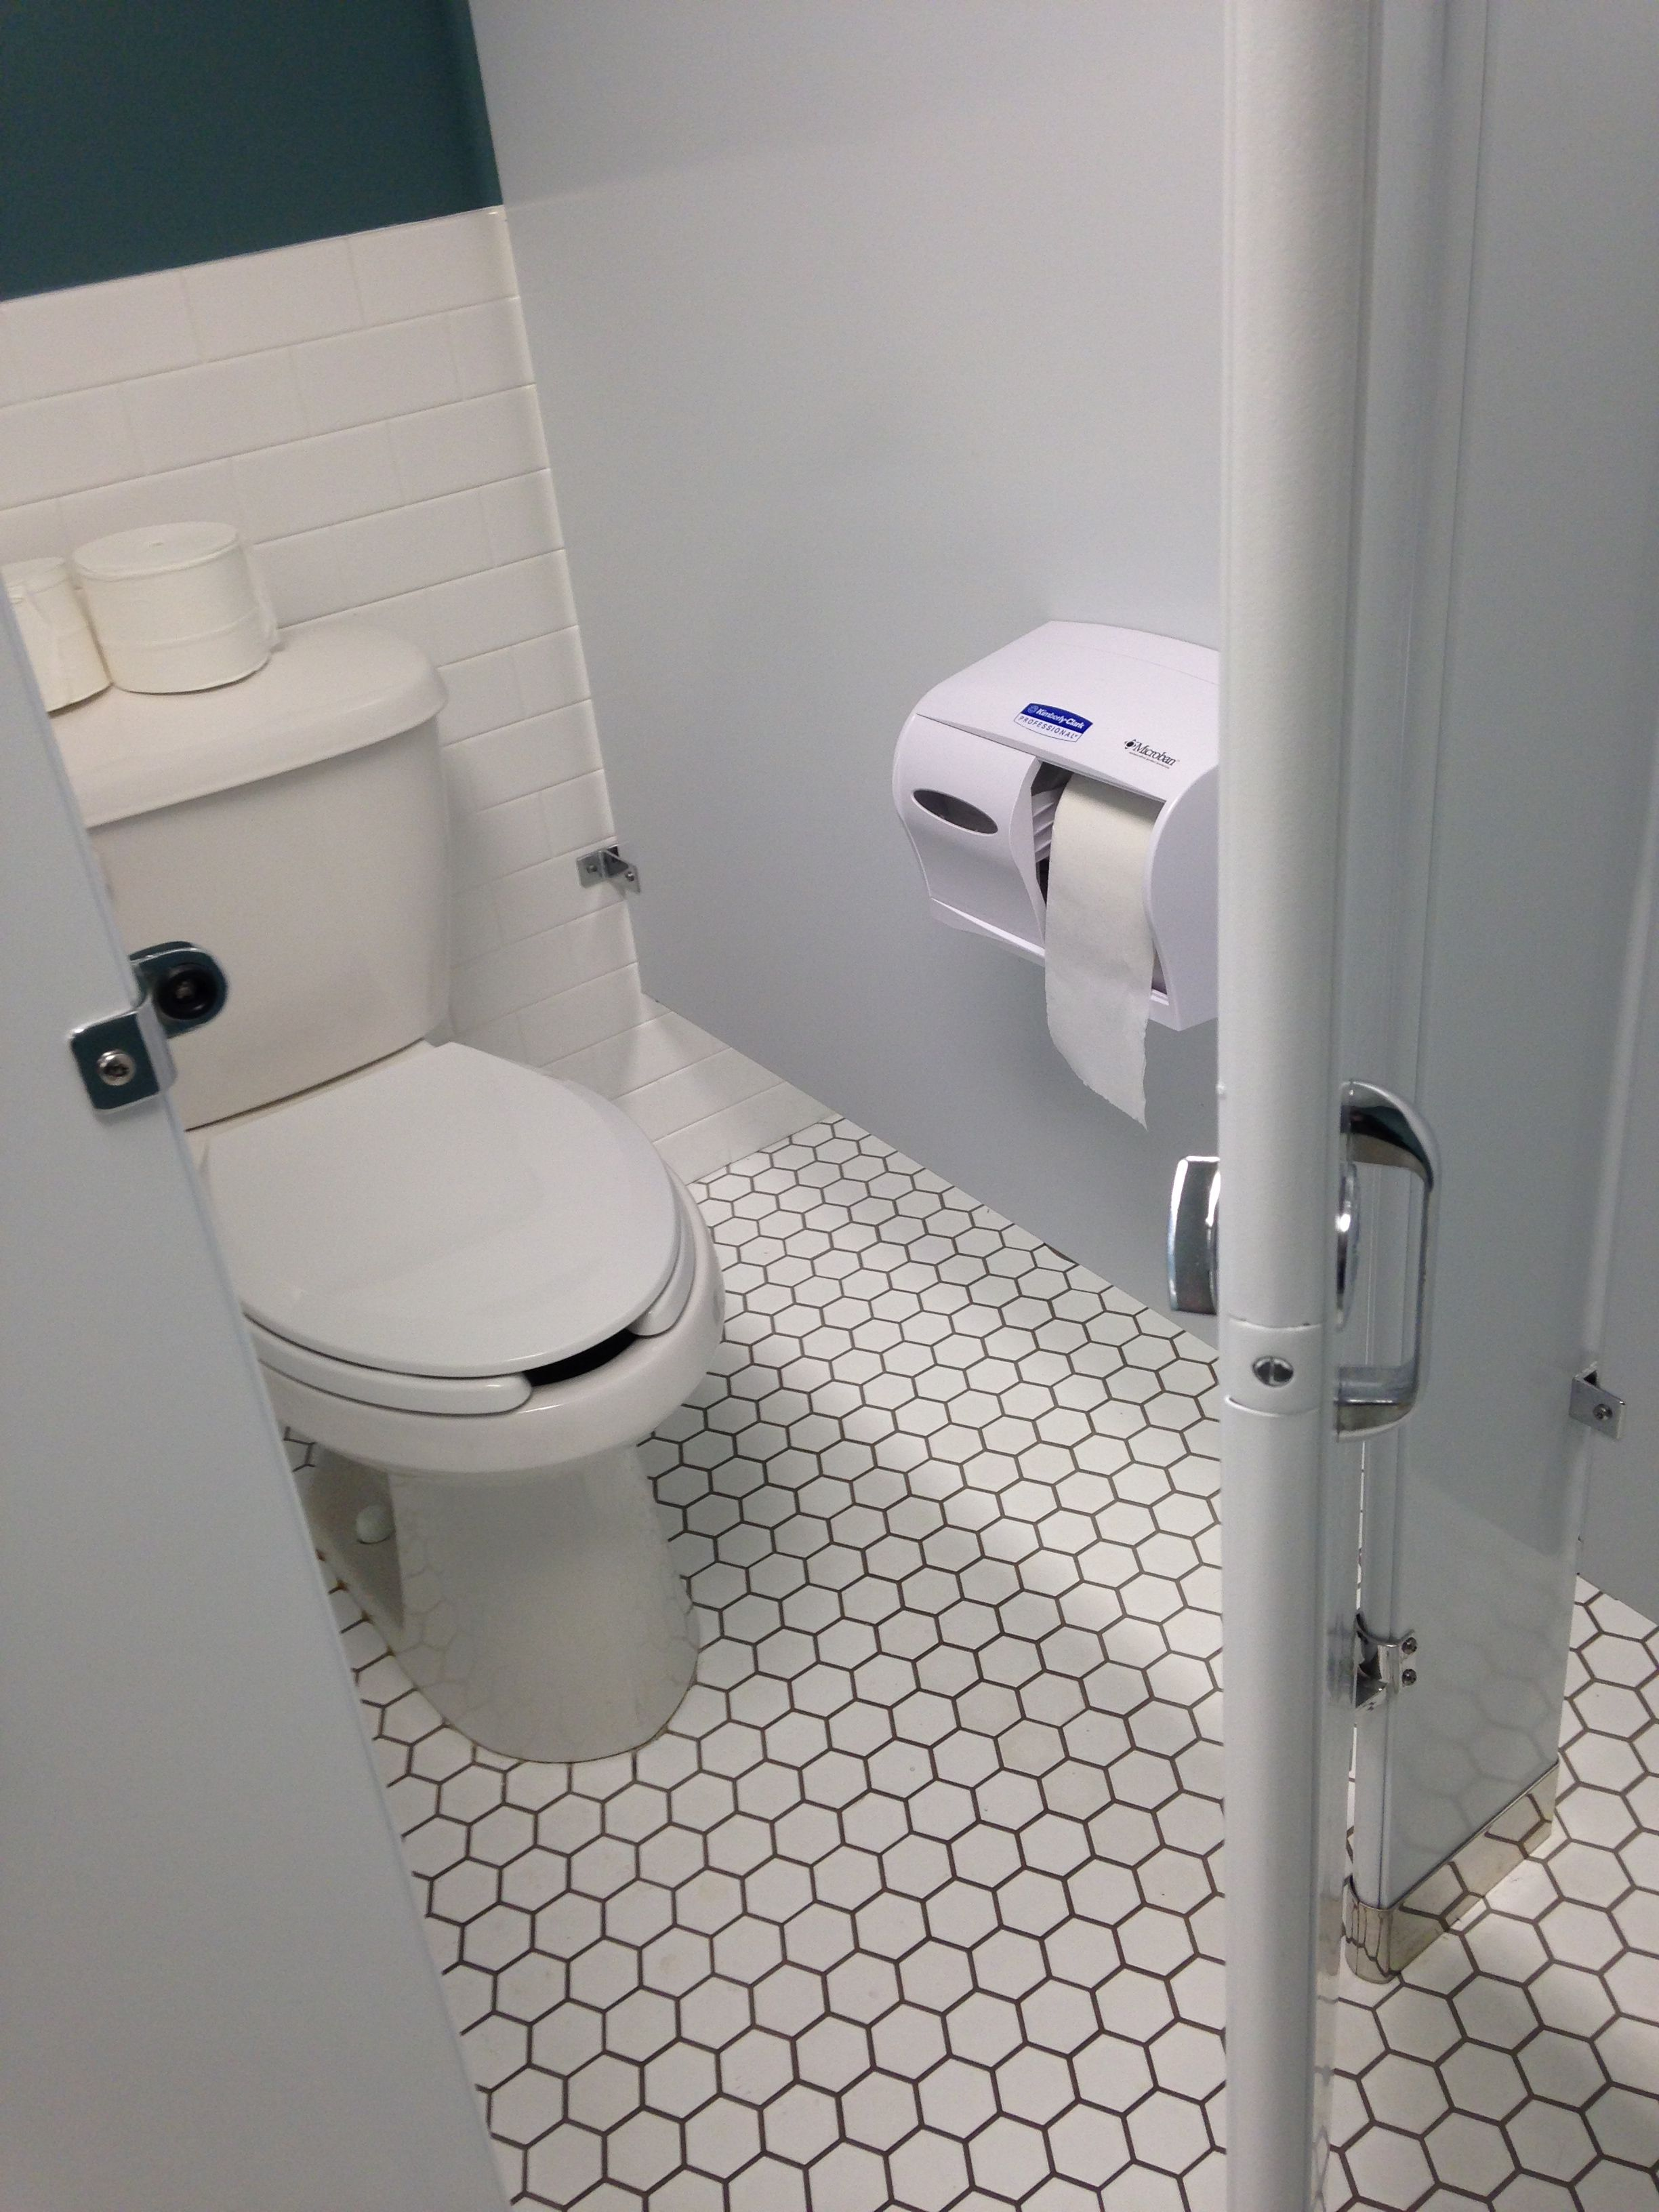 Should you stop using public toilets  SiOWfa16 Science